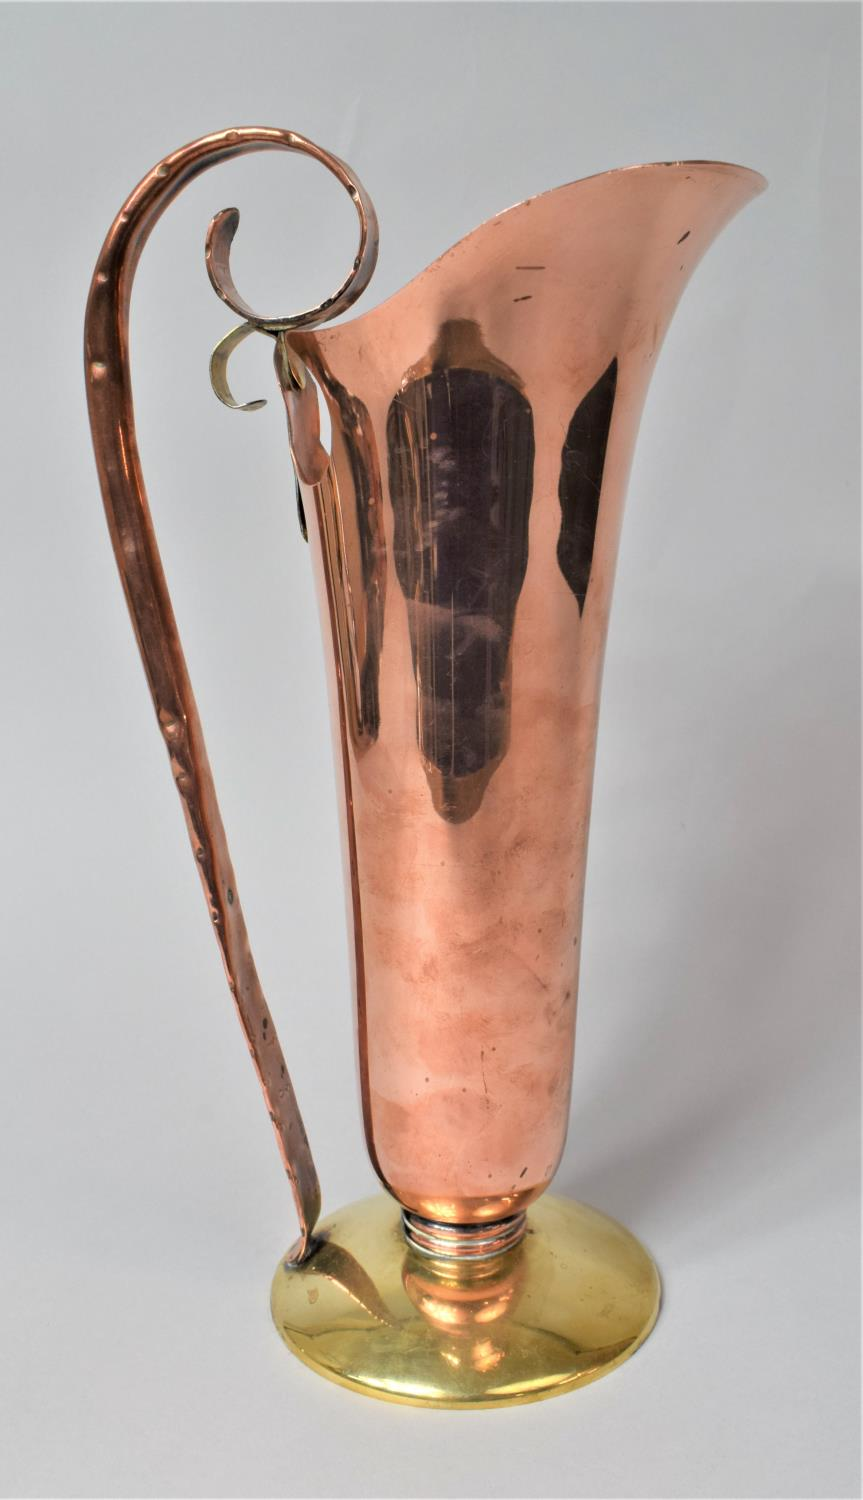 An Arts and Crafts Style Copper and Brass Ewer, 37cm high - Image 3 of 3